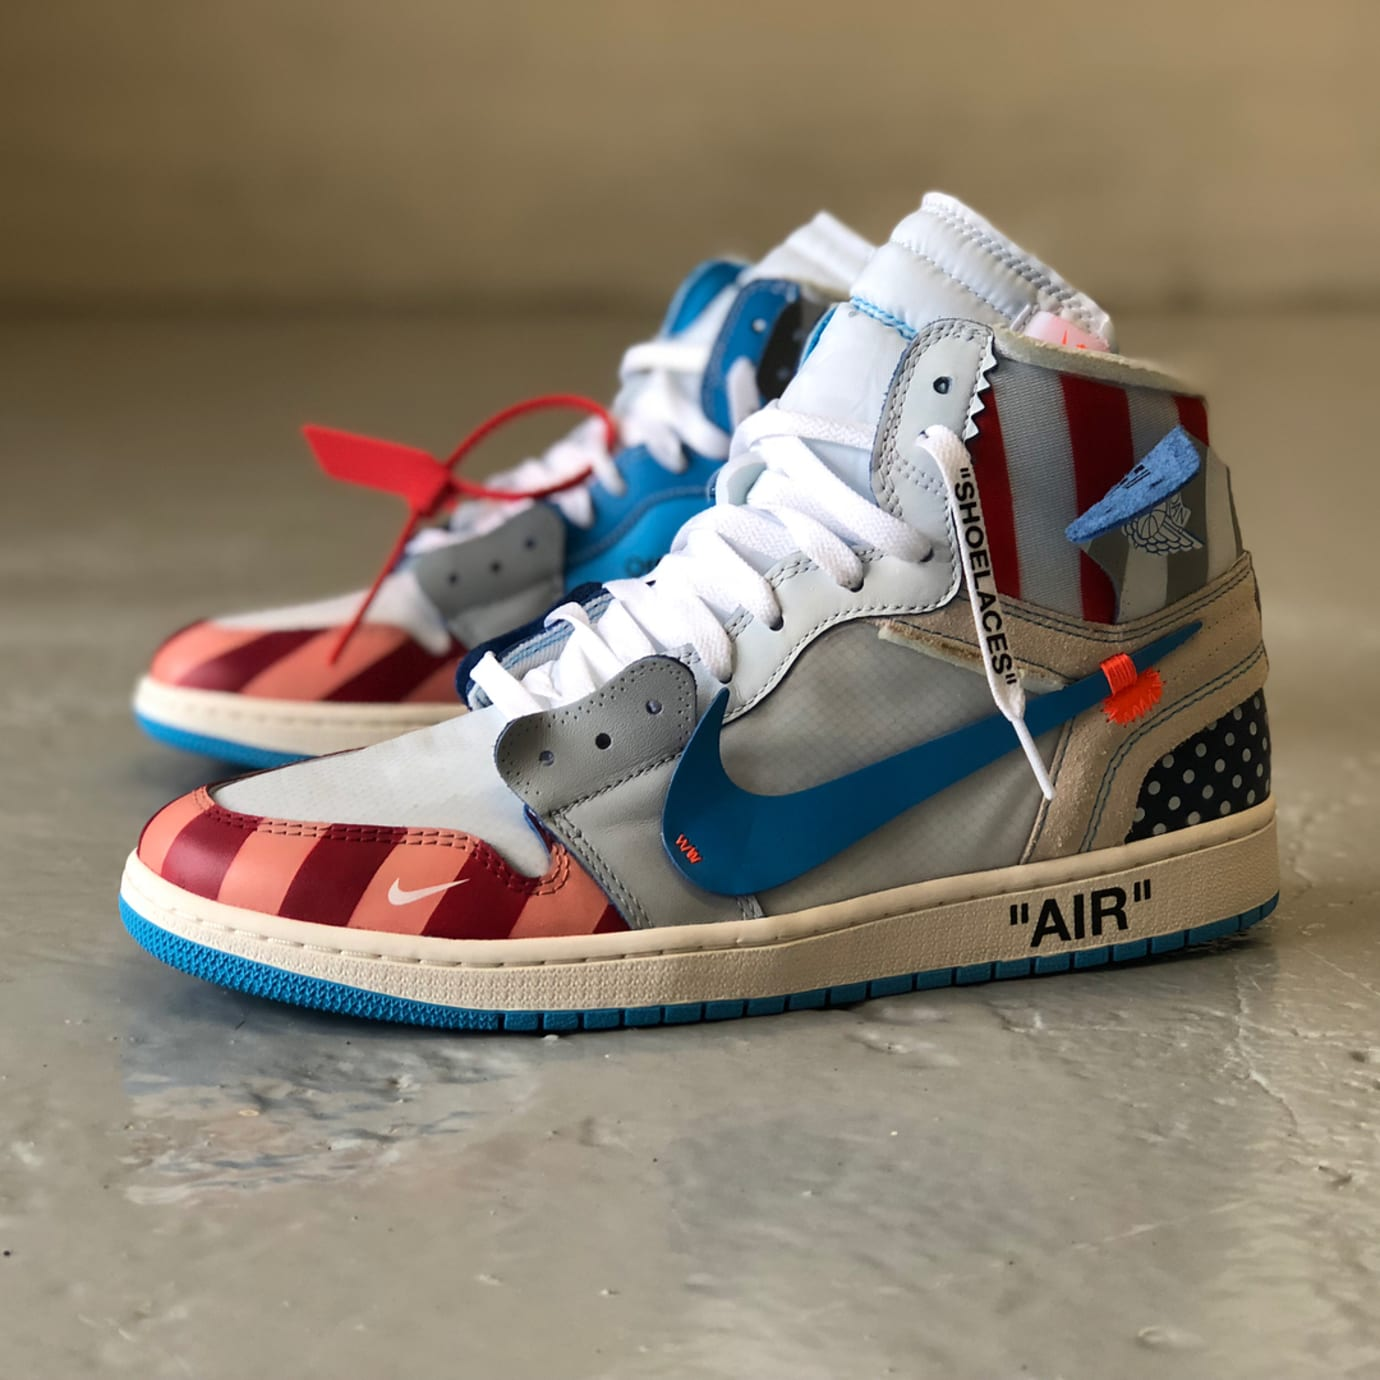 edf1e7f31085 Image via Mache275 · Parra x Off-White x Air Jordan 1 Mache Custom Side